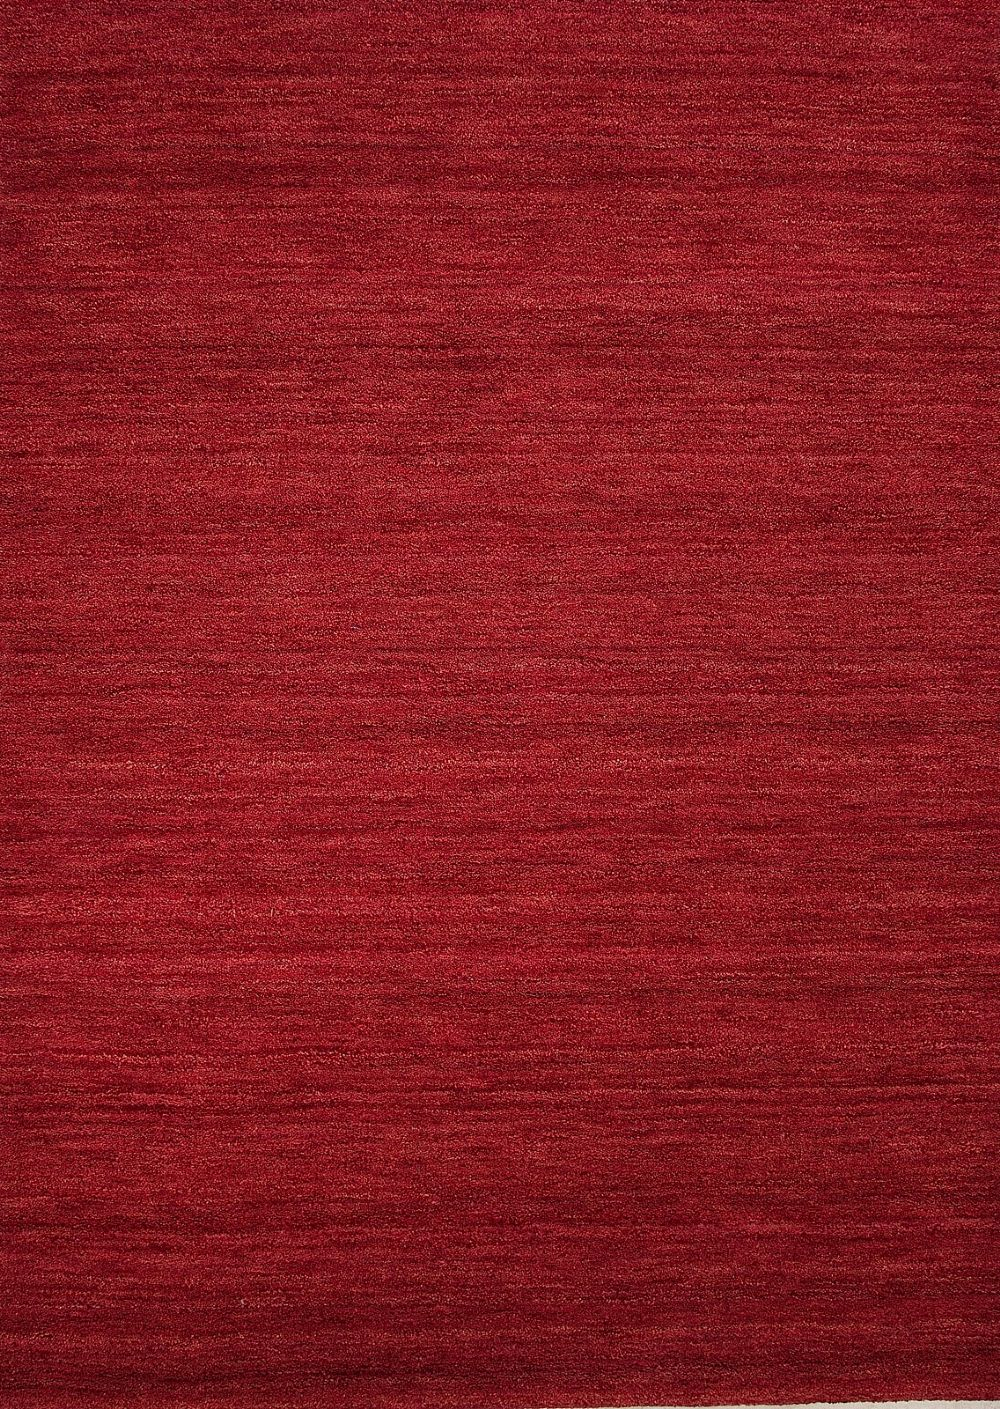 jaipur summit solid/striped area rug collection